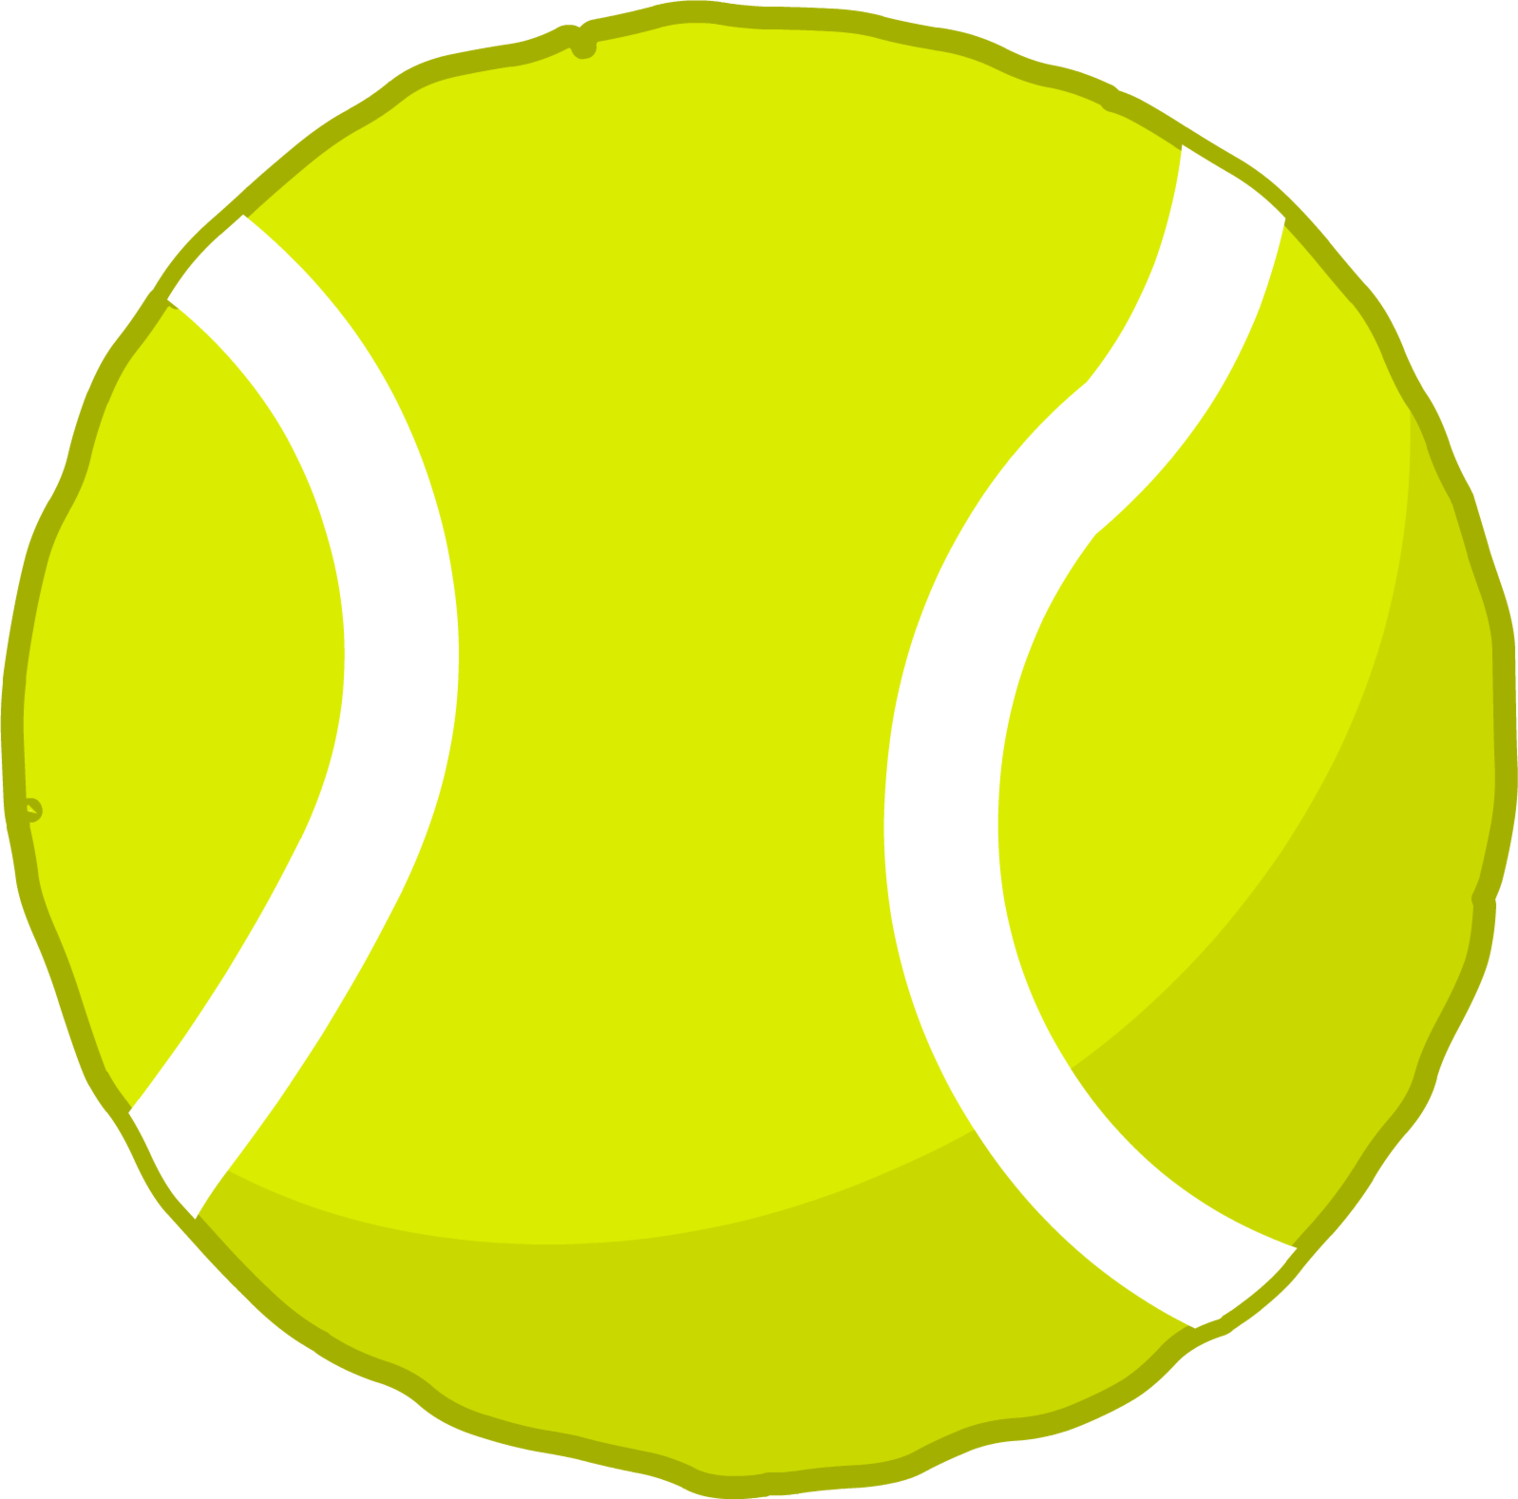 Picture of tennis ball clipar - Tennis Ball Clip Art